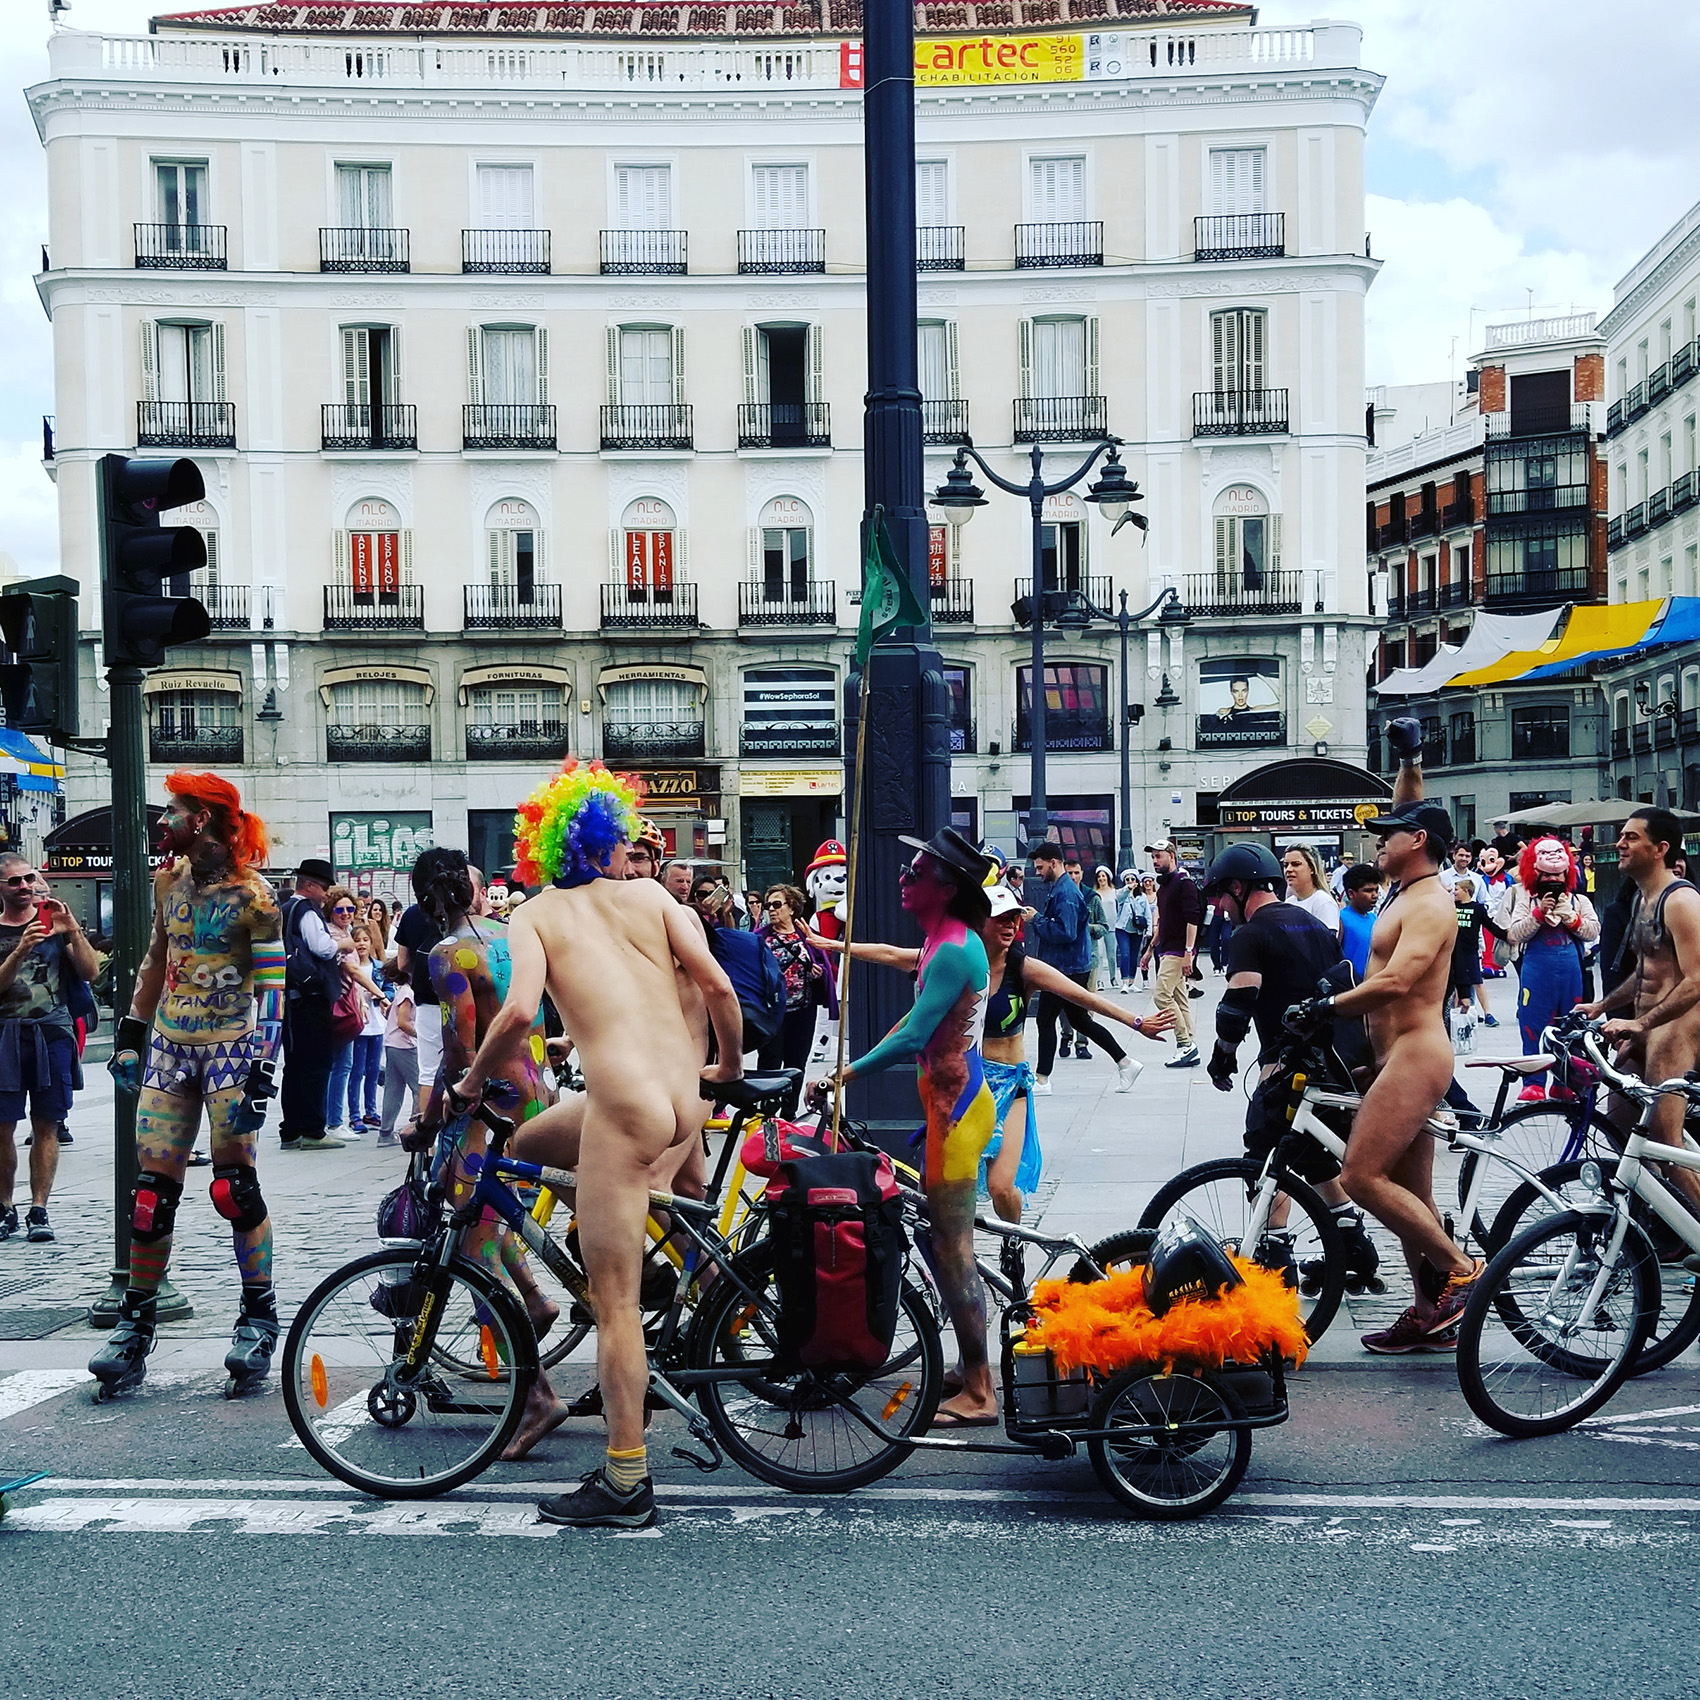 photo of protest on the streets of Madrid featuring colorful outfits, nudity, bicycles